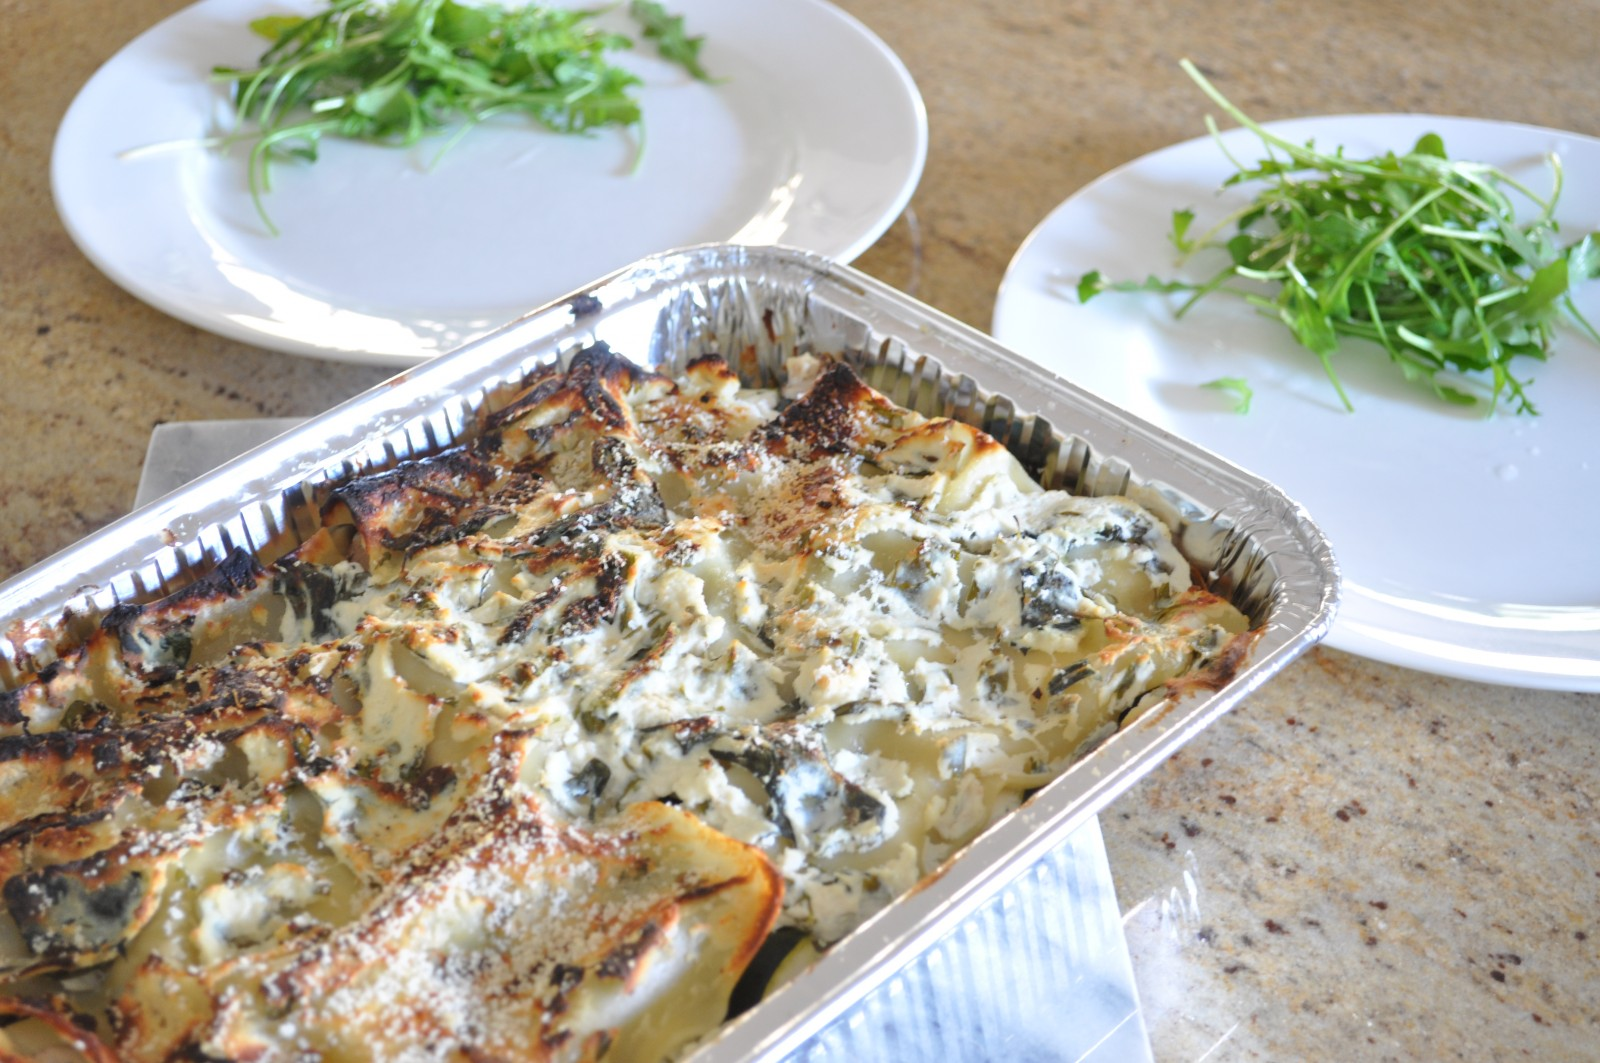 Ricotta and vegetable lasagna